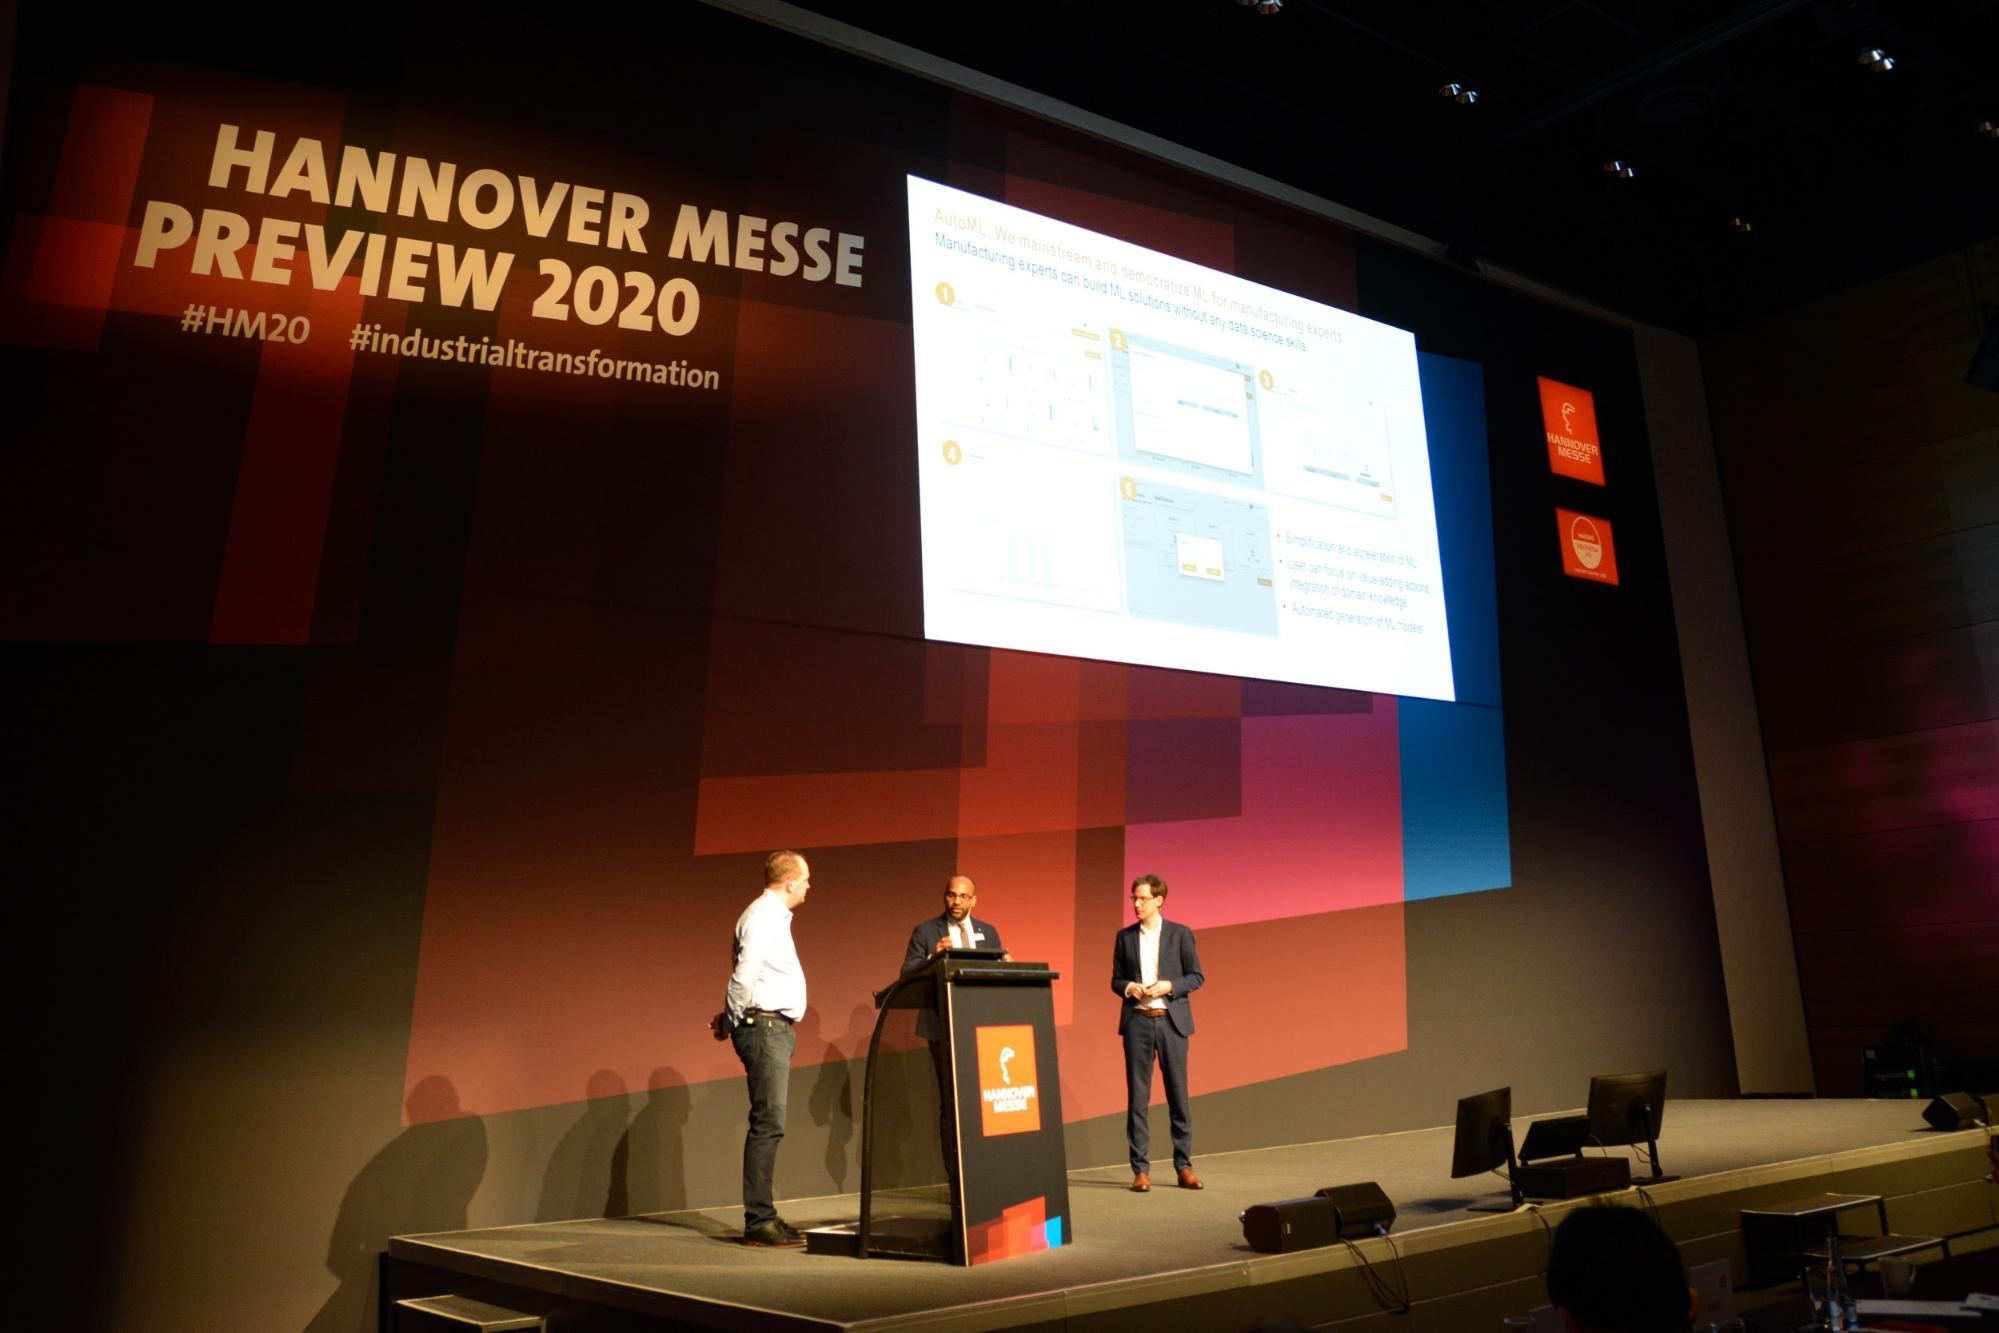 Hannover Messe Preview 2020